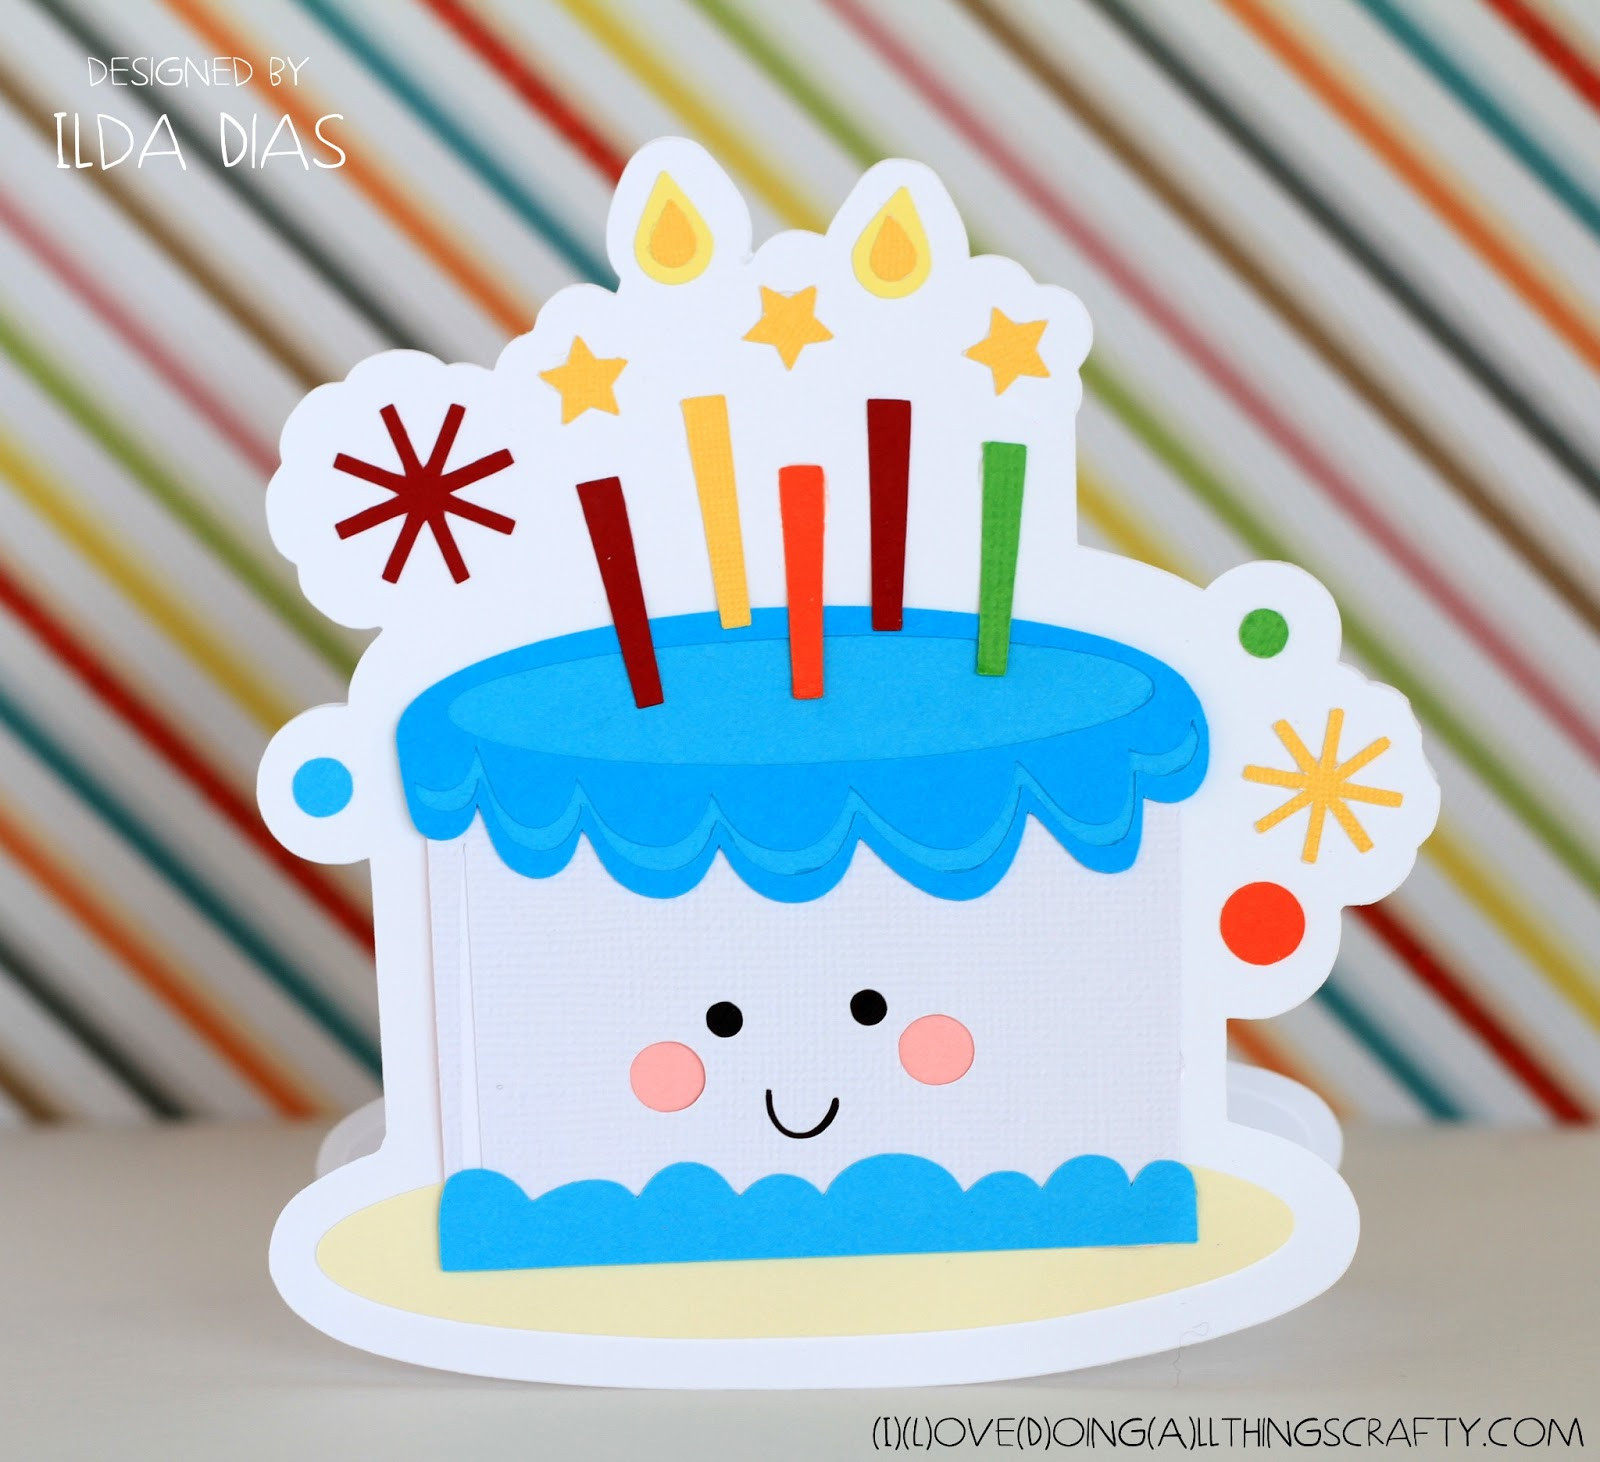 Birthday Cake Cards  I Love Doing All Things Crafty Happy Birthday Cake Shaped